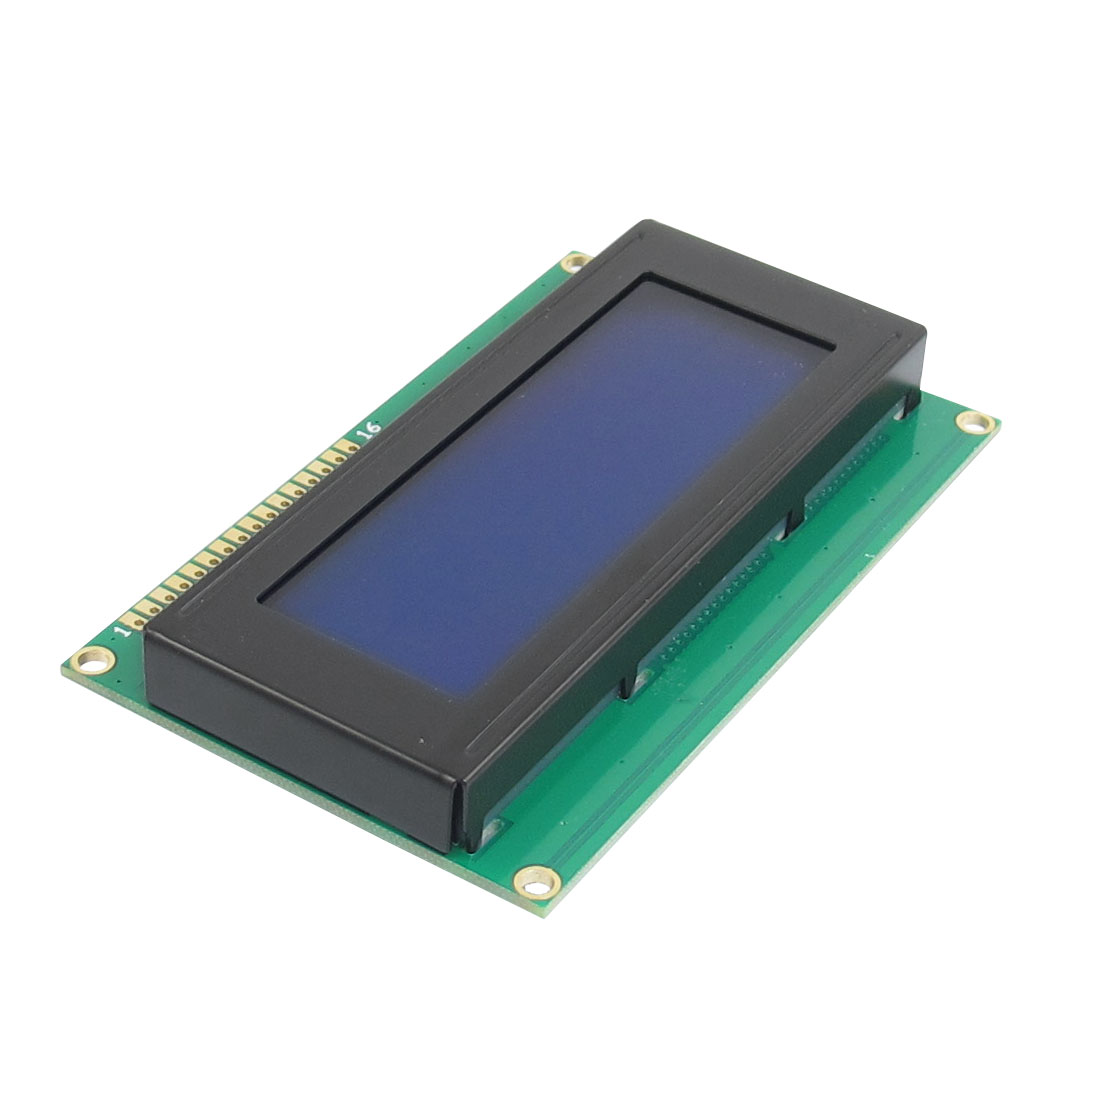 DC 5V 16-bit Blue Screen LCD Diaplay Module 100mmx40mm